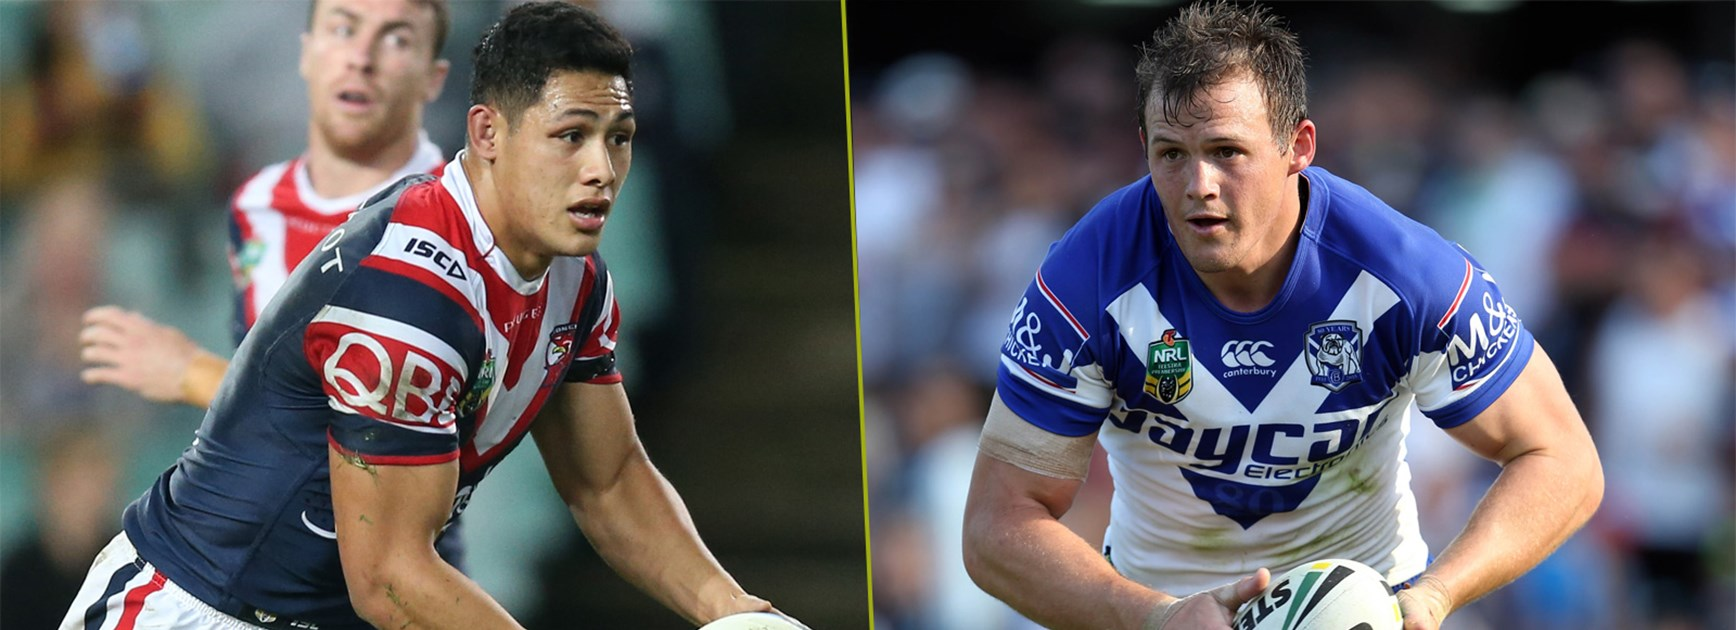 Roger Tuivasa-Sheck and Brett Morris are two ex-wingers who have become star fullbacks this season.